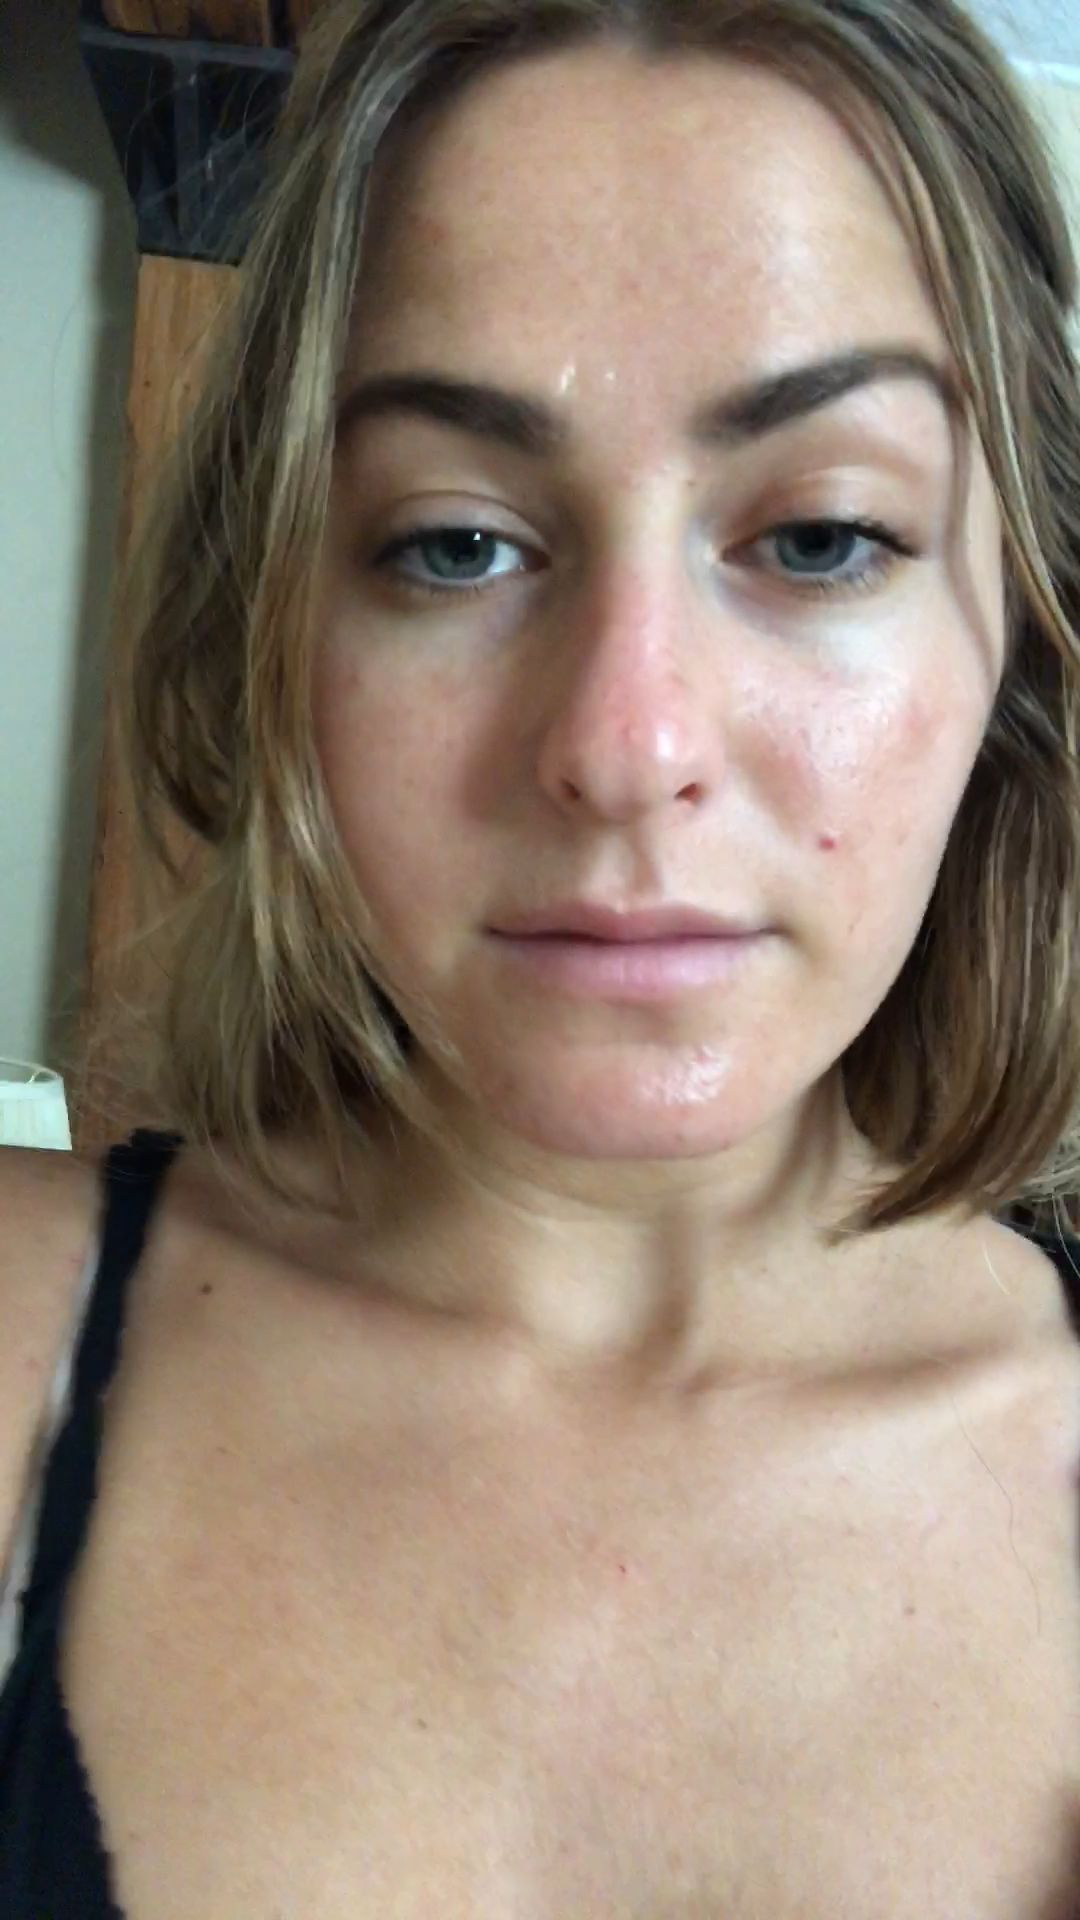 Scout Taylor-Compton Leaked